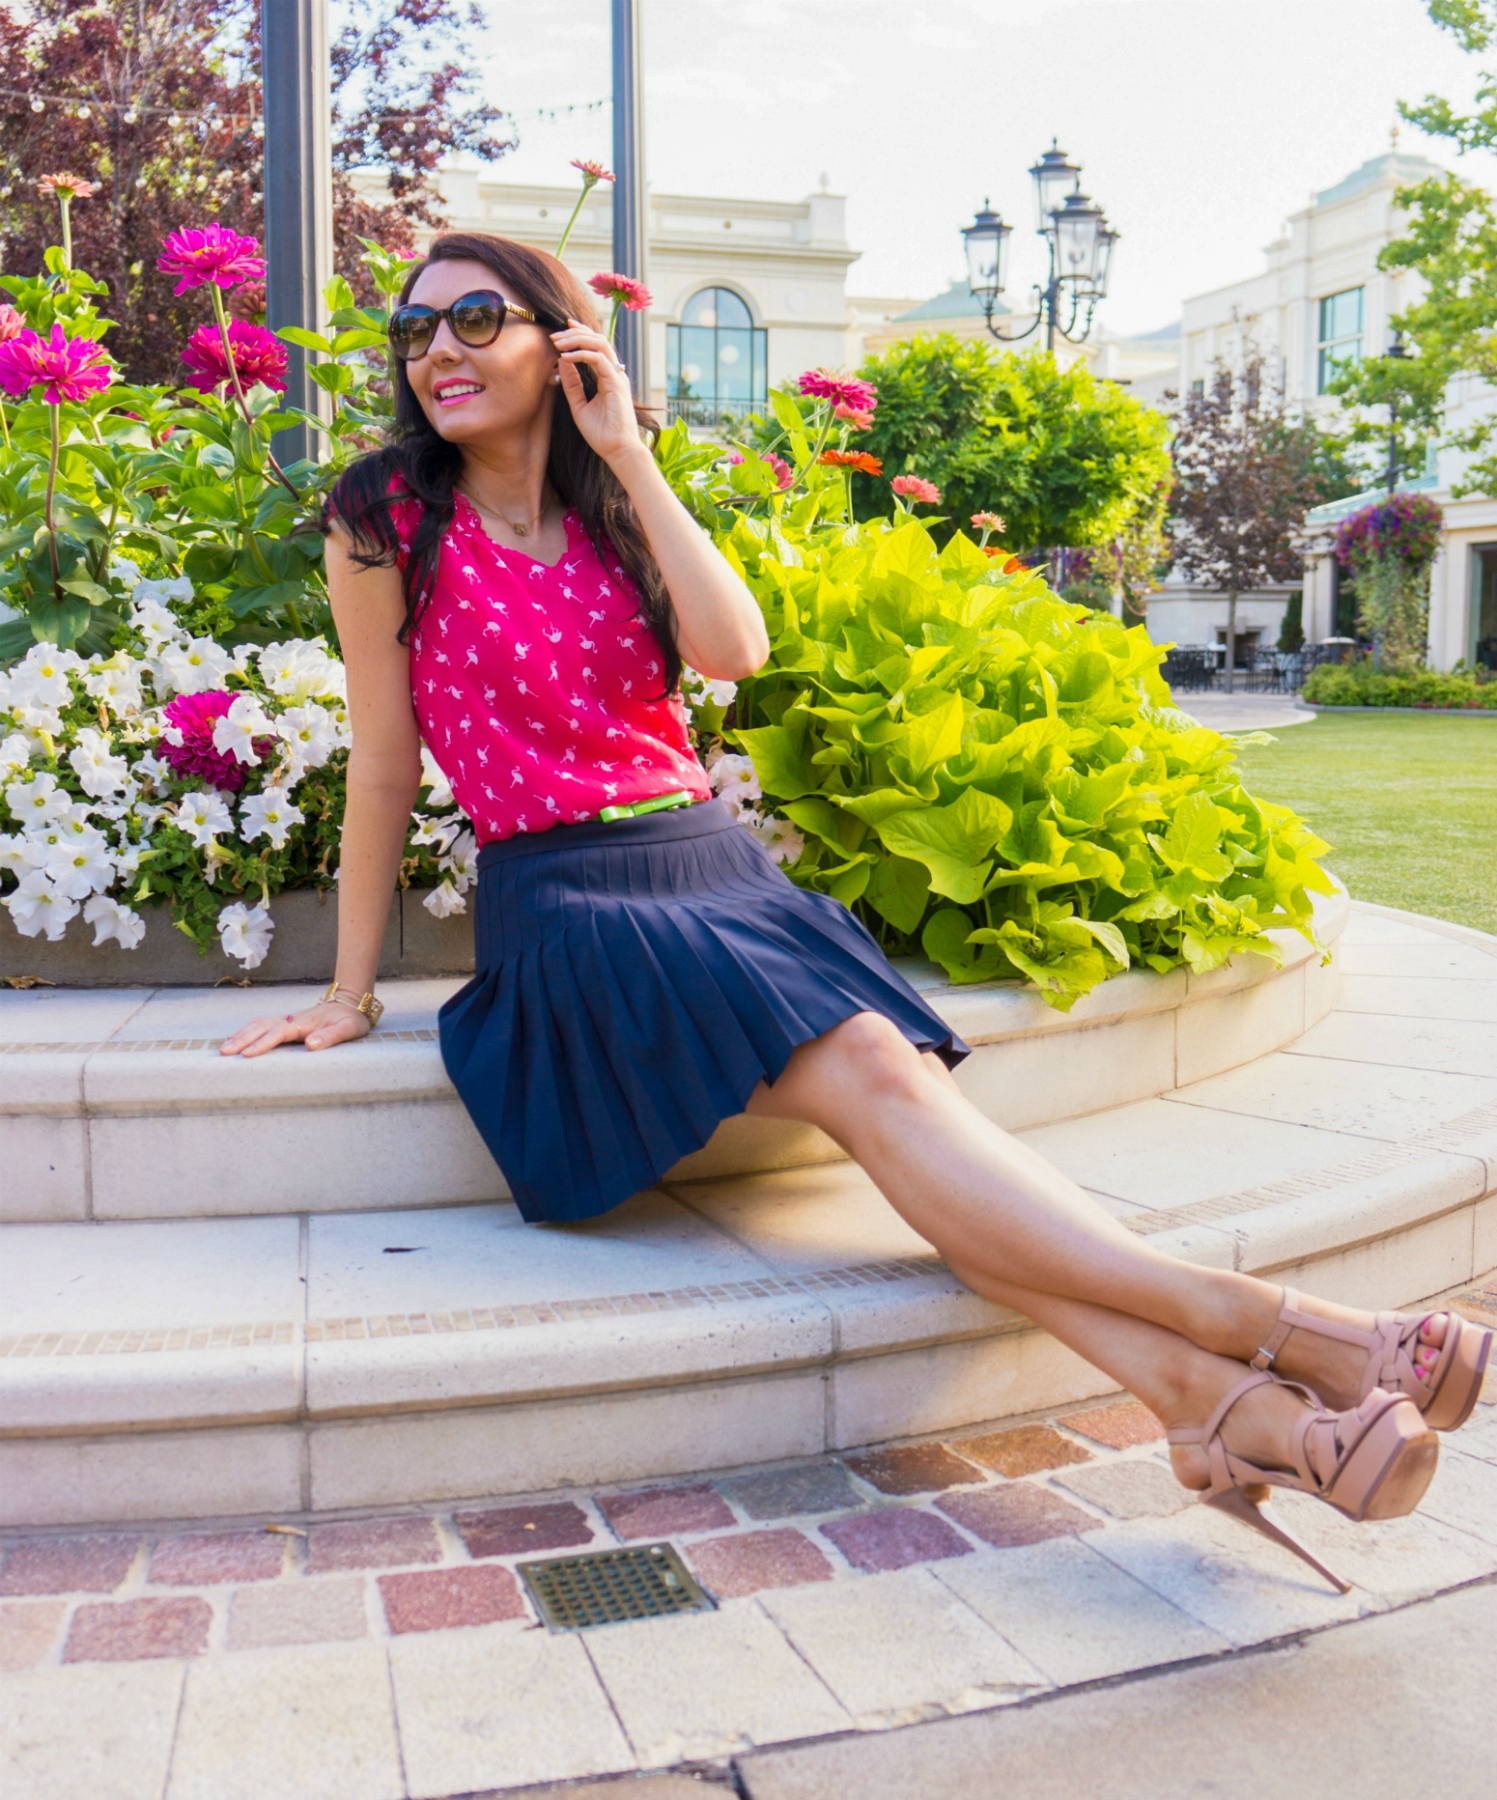 The Sugared Lemon flamingo trend summer time chic outfit